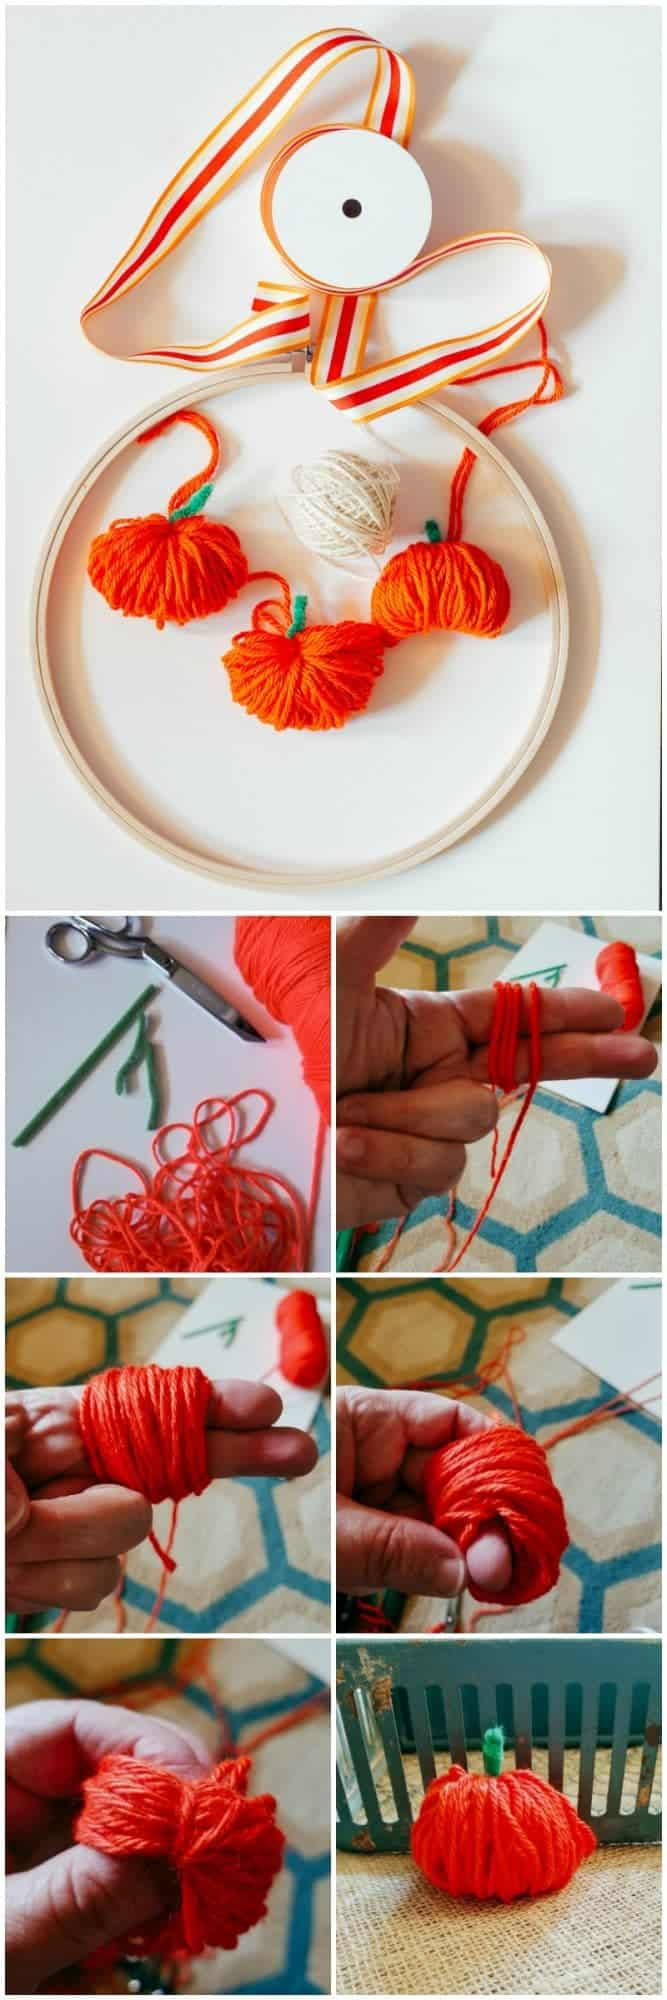 How to make a chubby yarn pumpkin